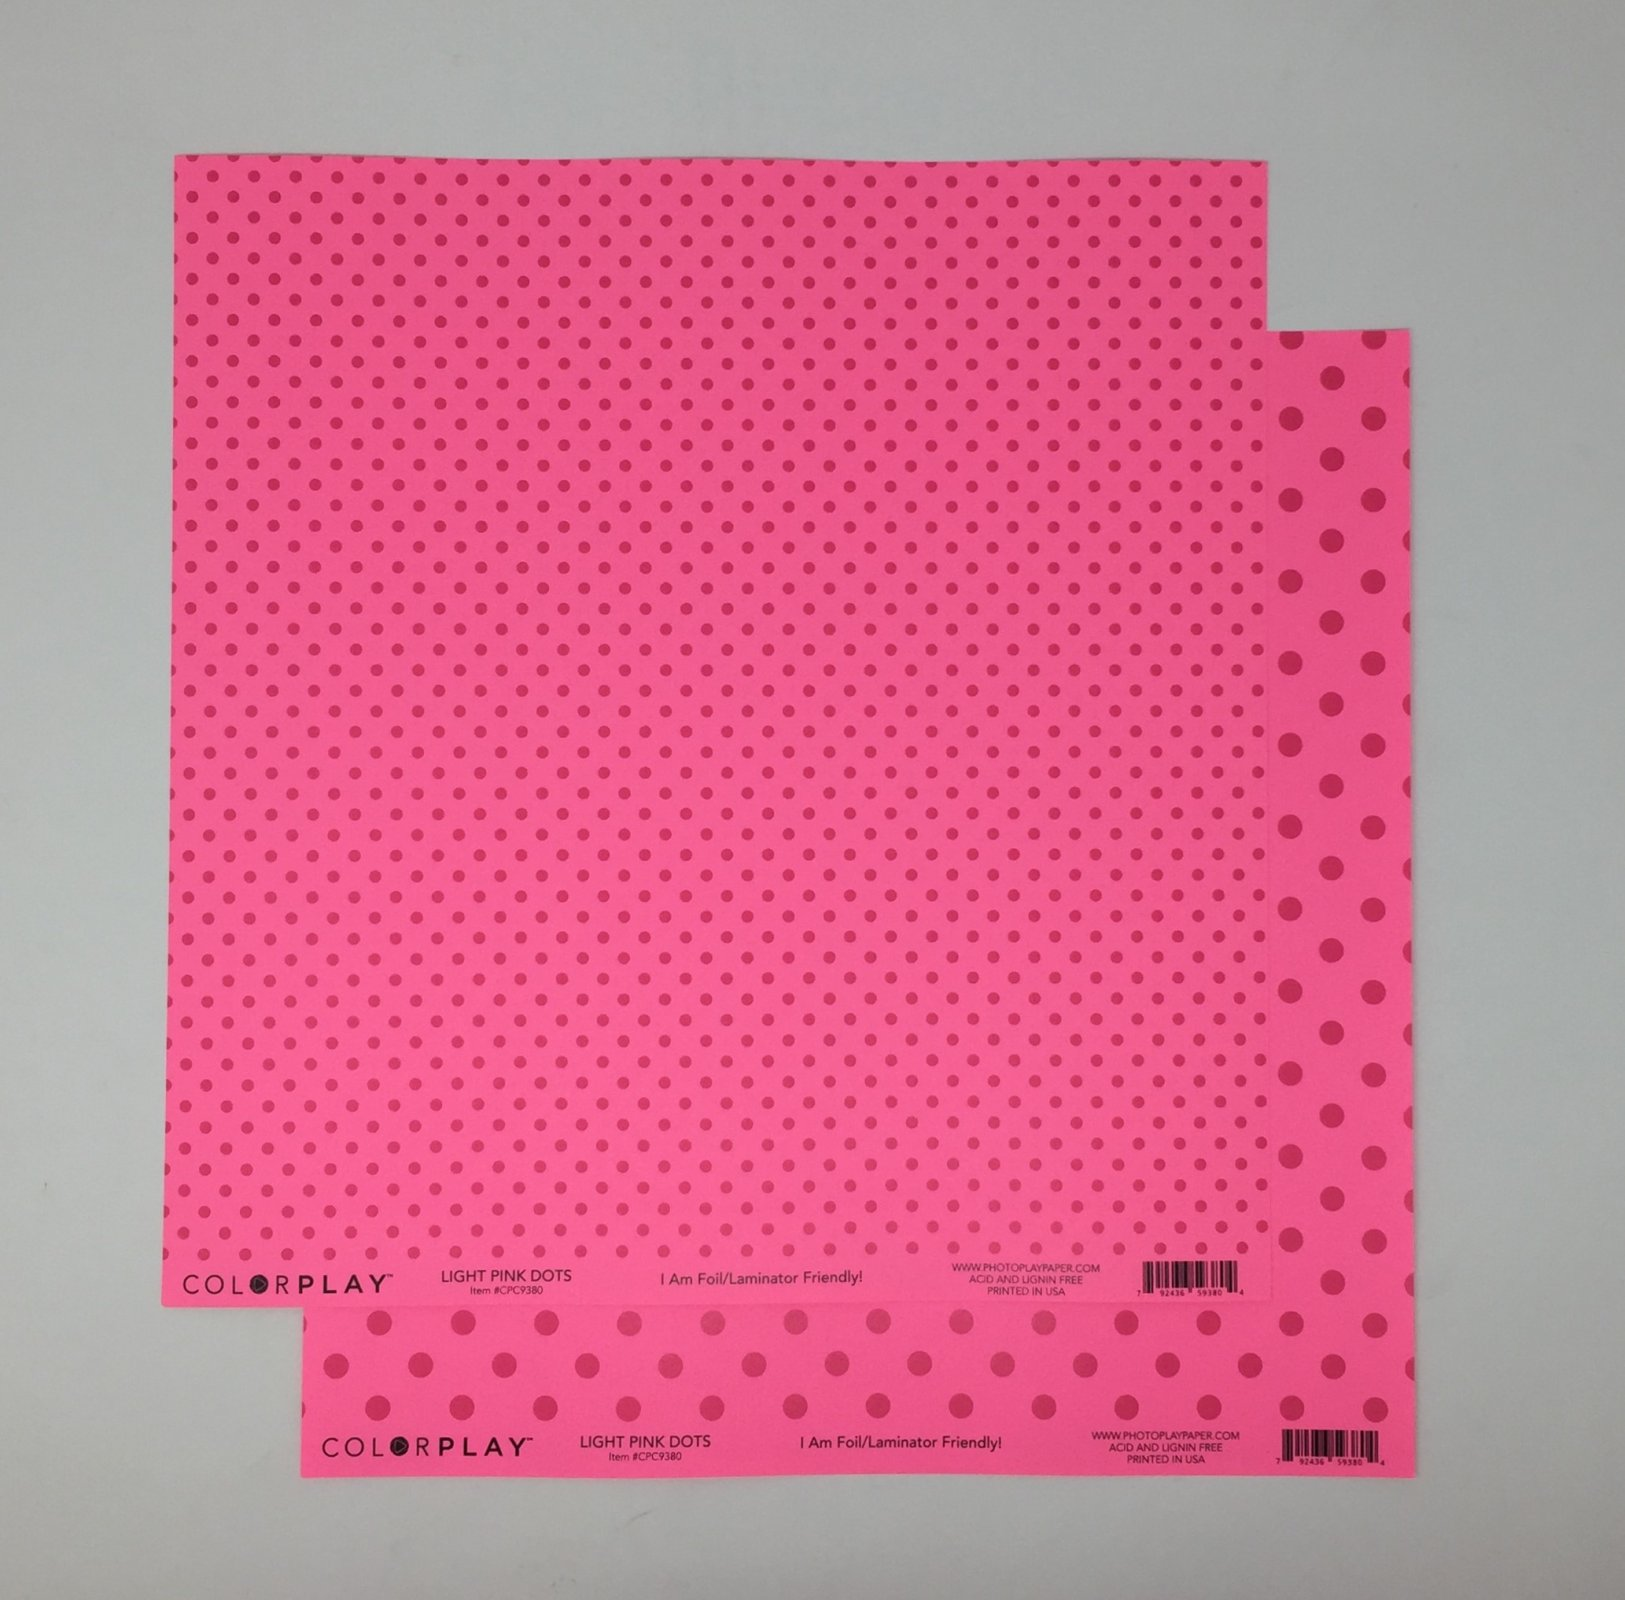 ^ColorPlay 12x12 Cardstock - Light Pink Dots (CLEARANCE)